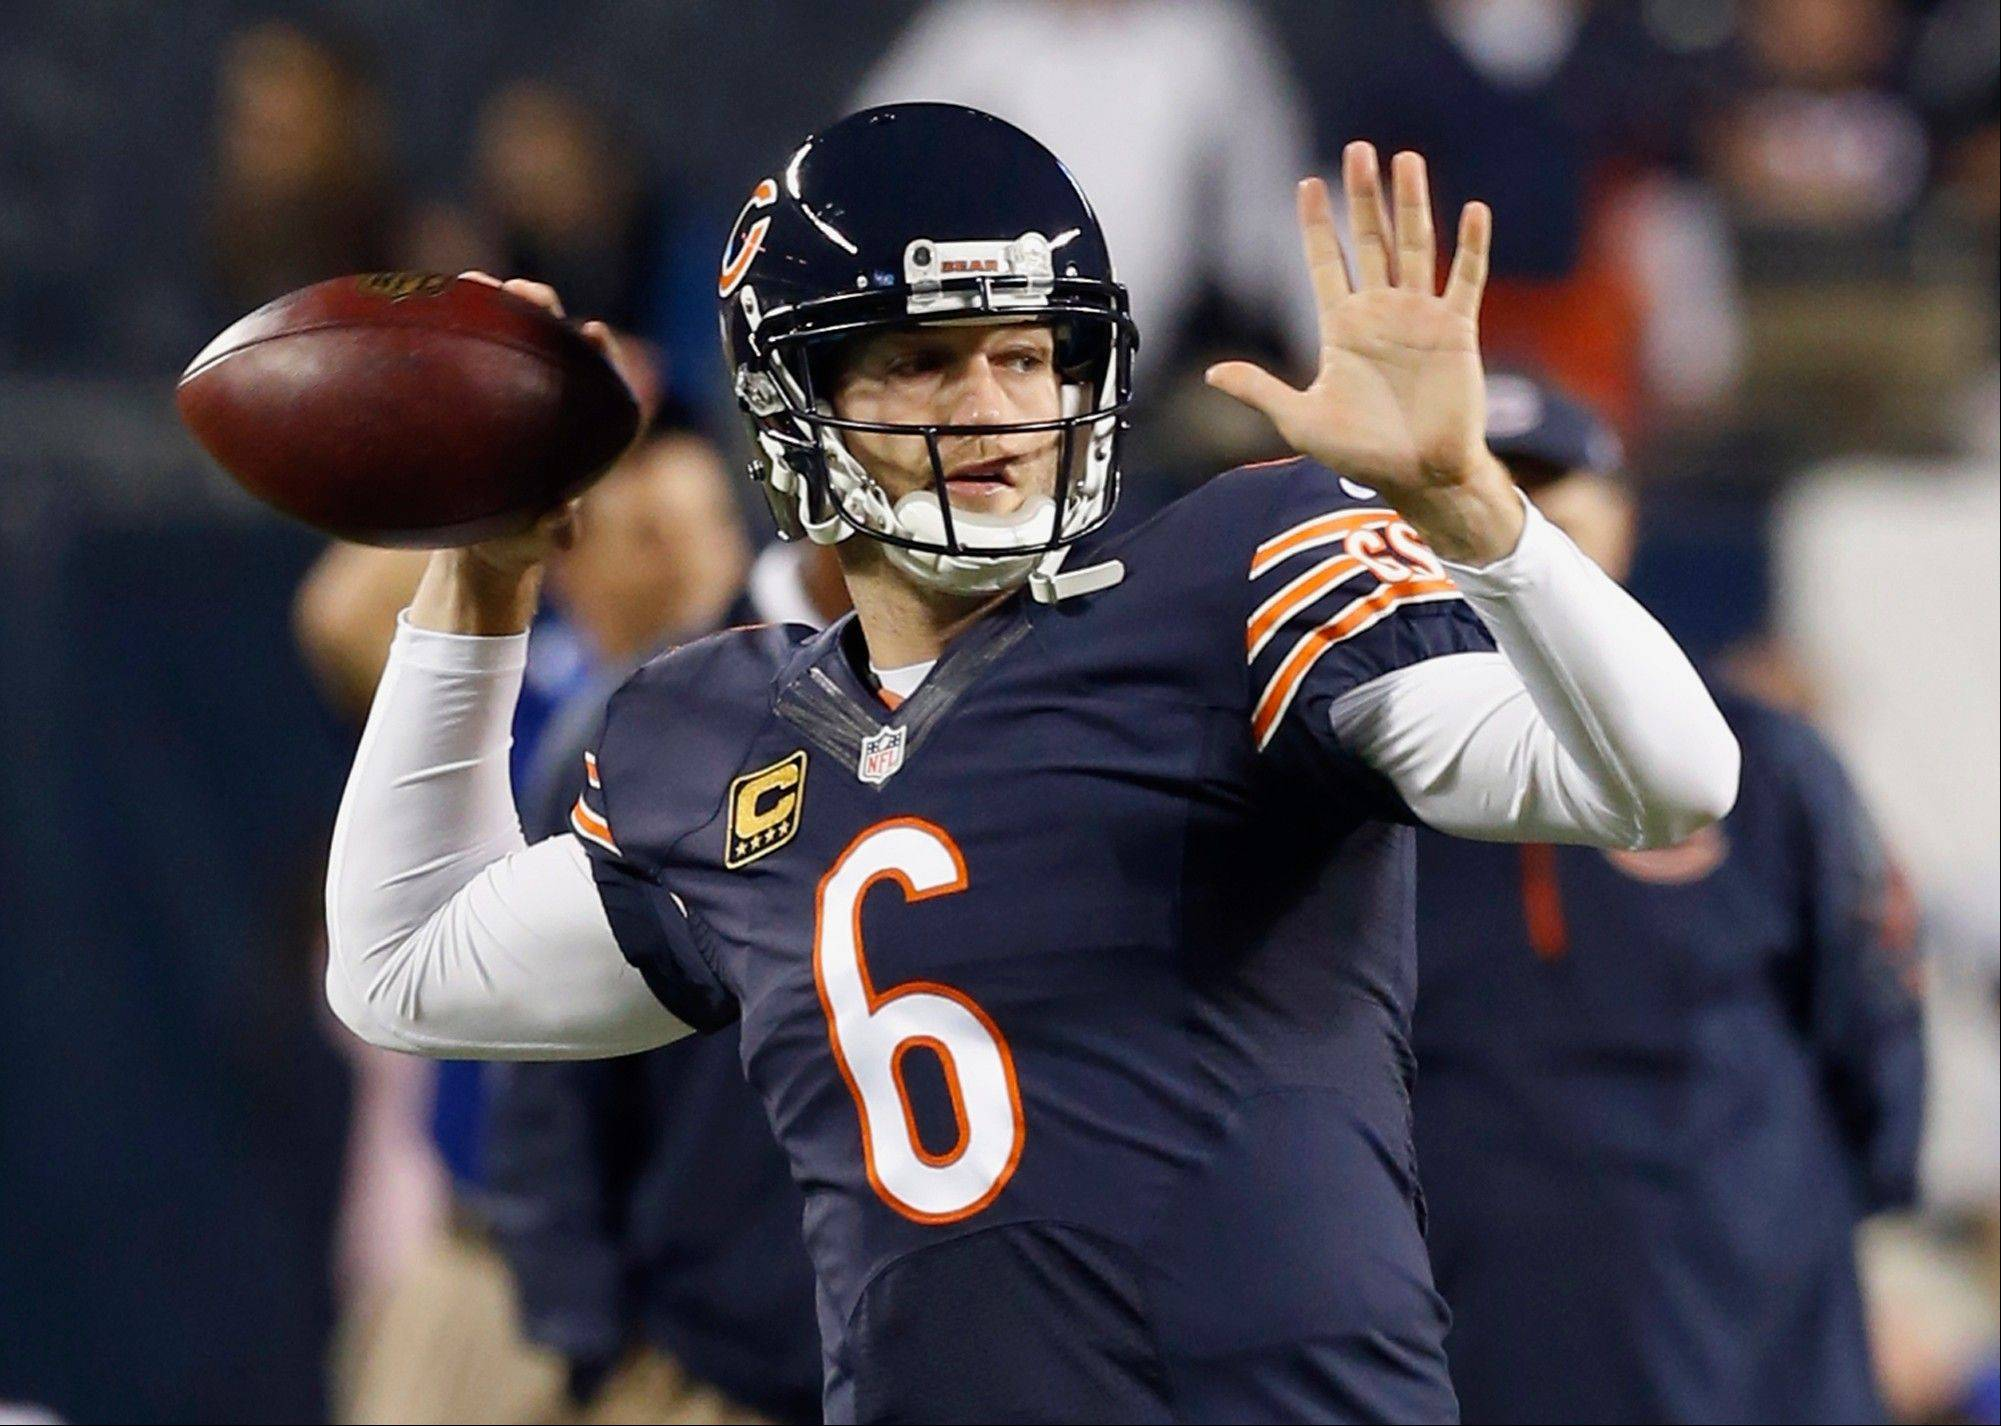 Jay Cutler throws during warm-ups for the Bears' NFL football game against the New York Giants, Thursday, Oct. 10, 2013, in Chicago.